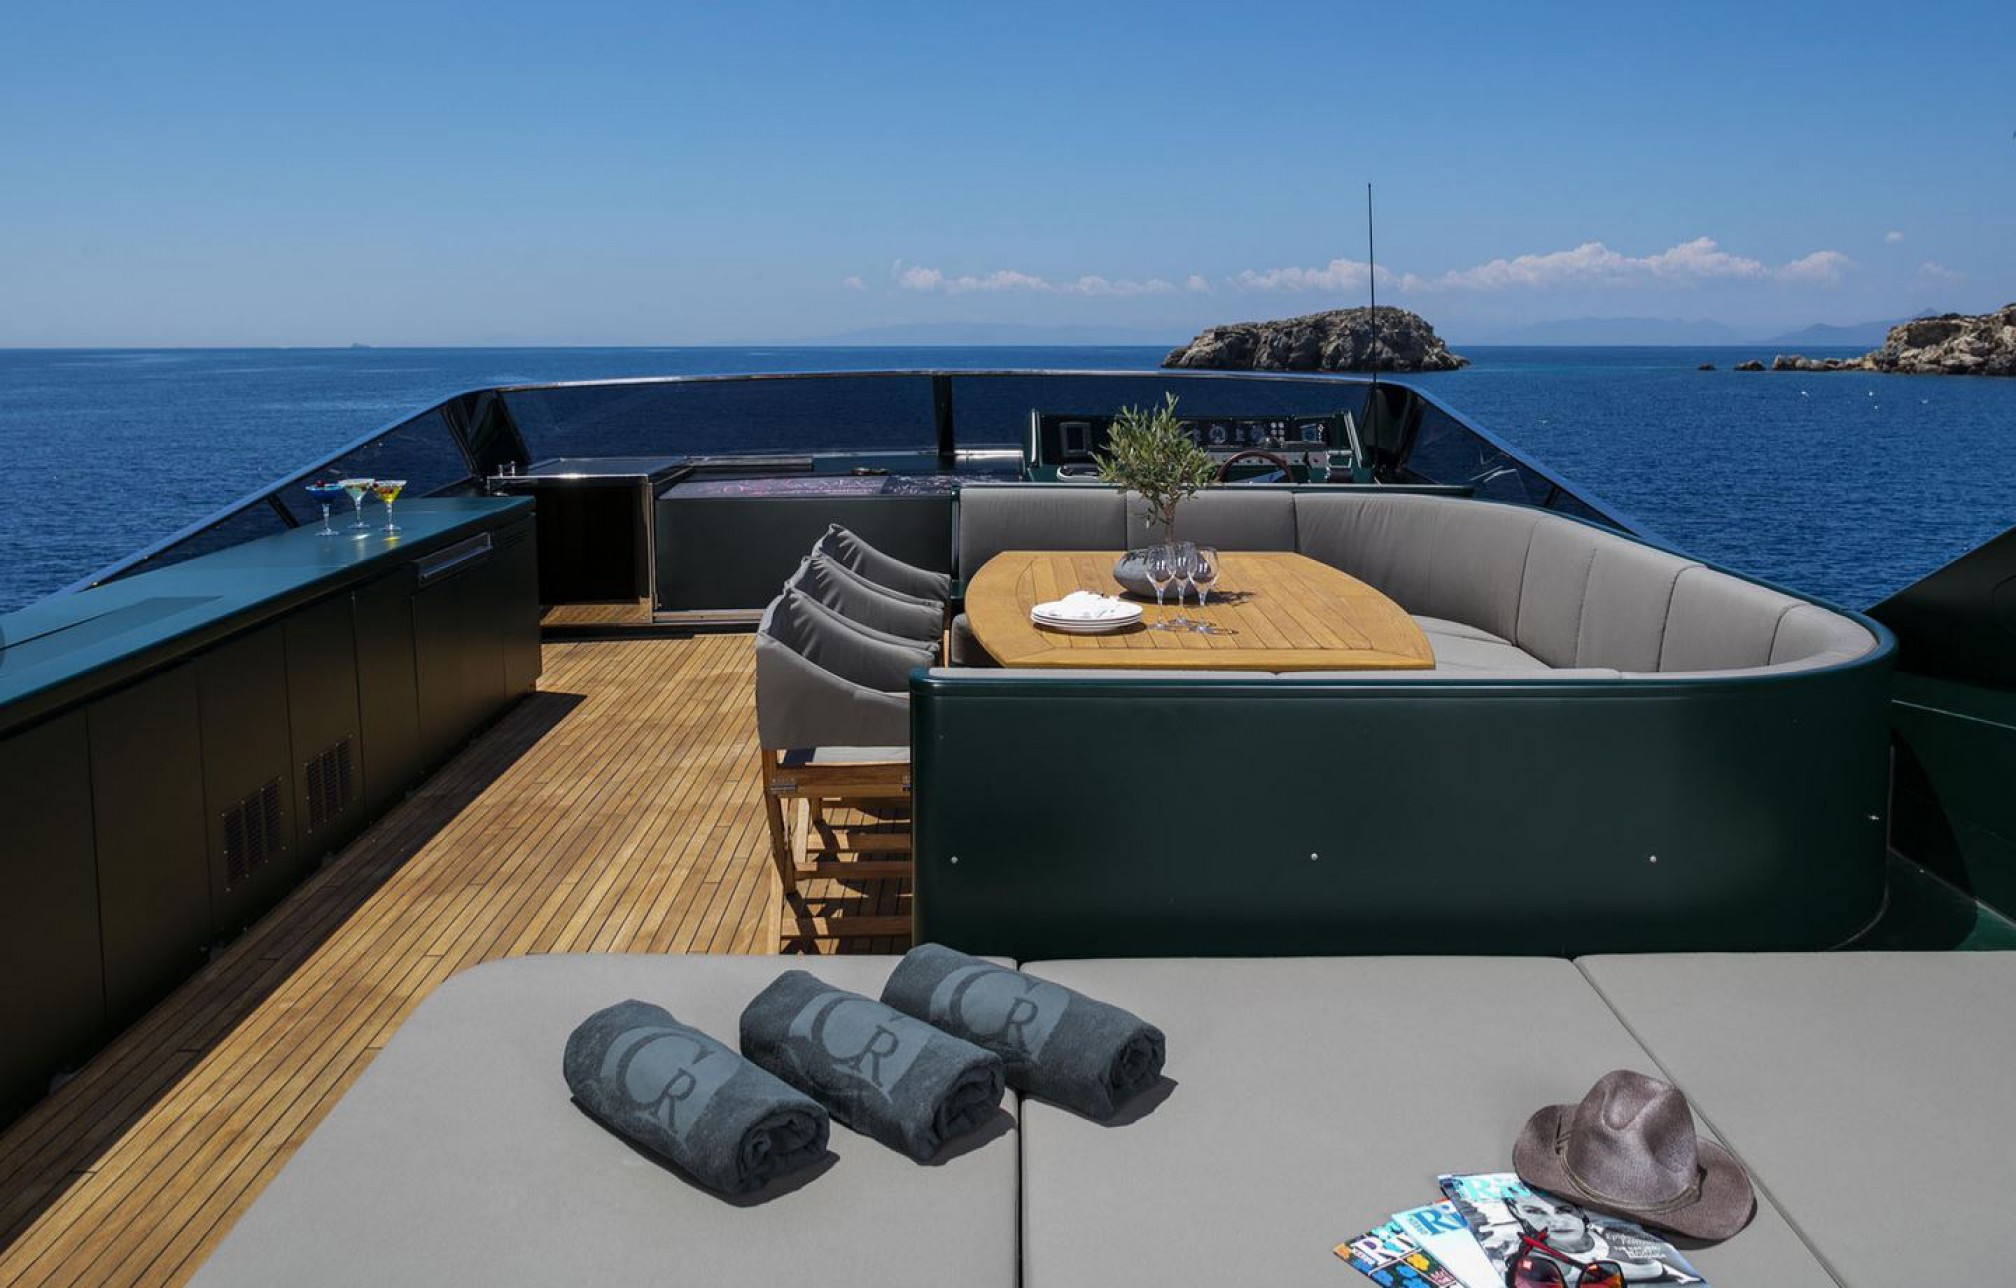 Rental yacht Can't Remember outdoors